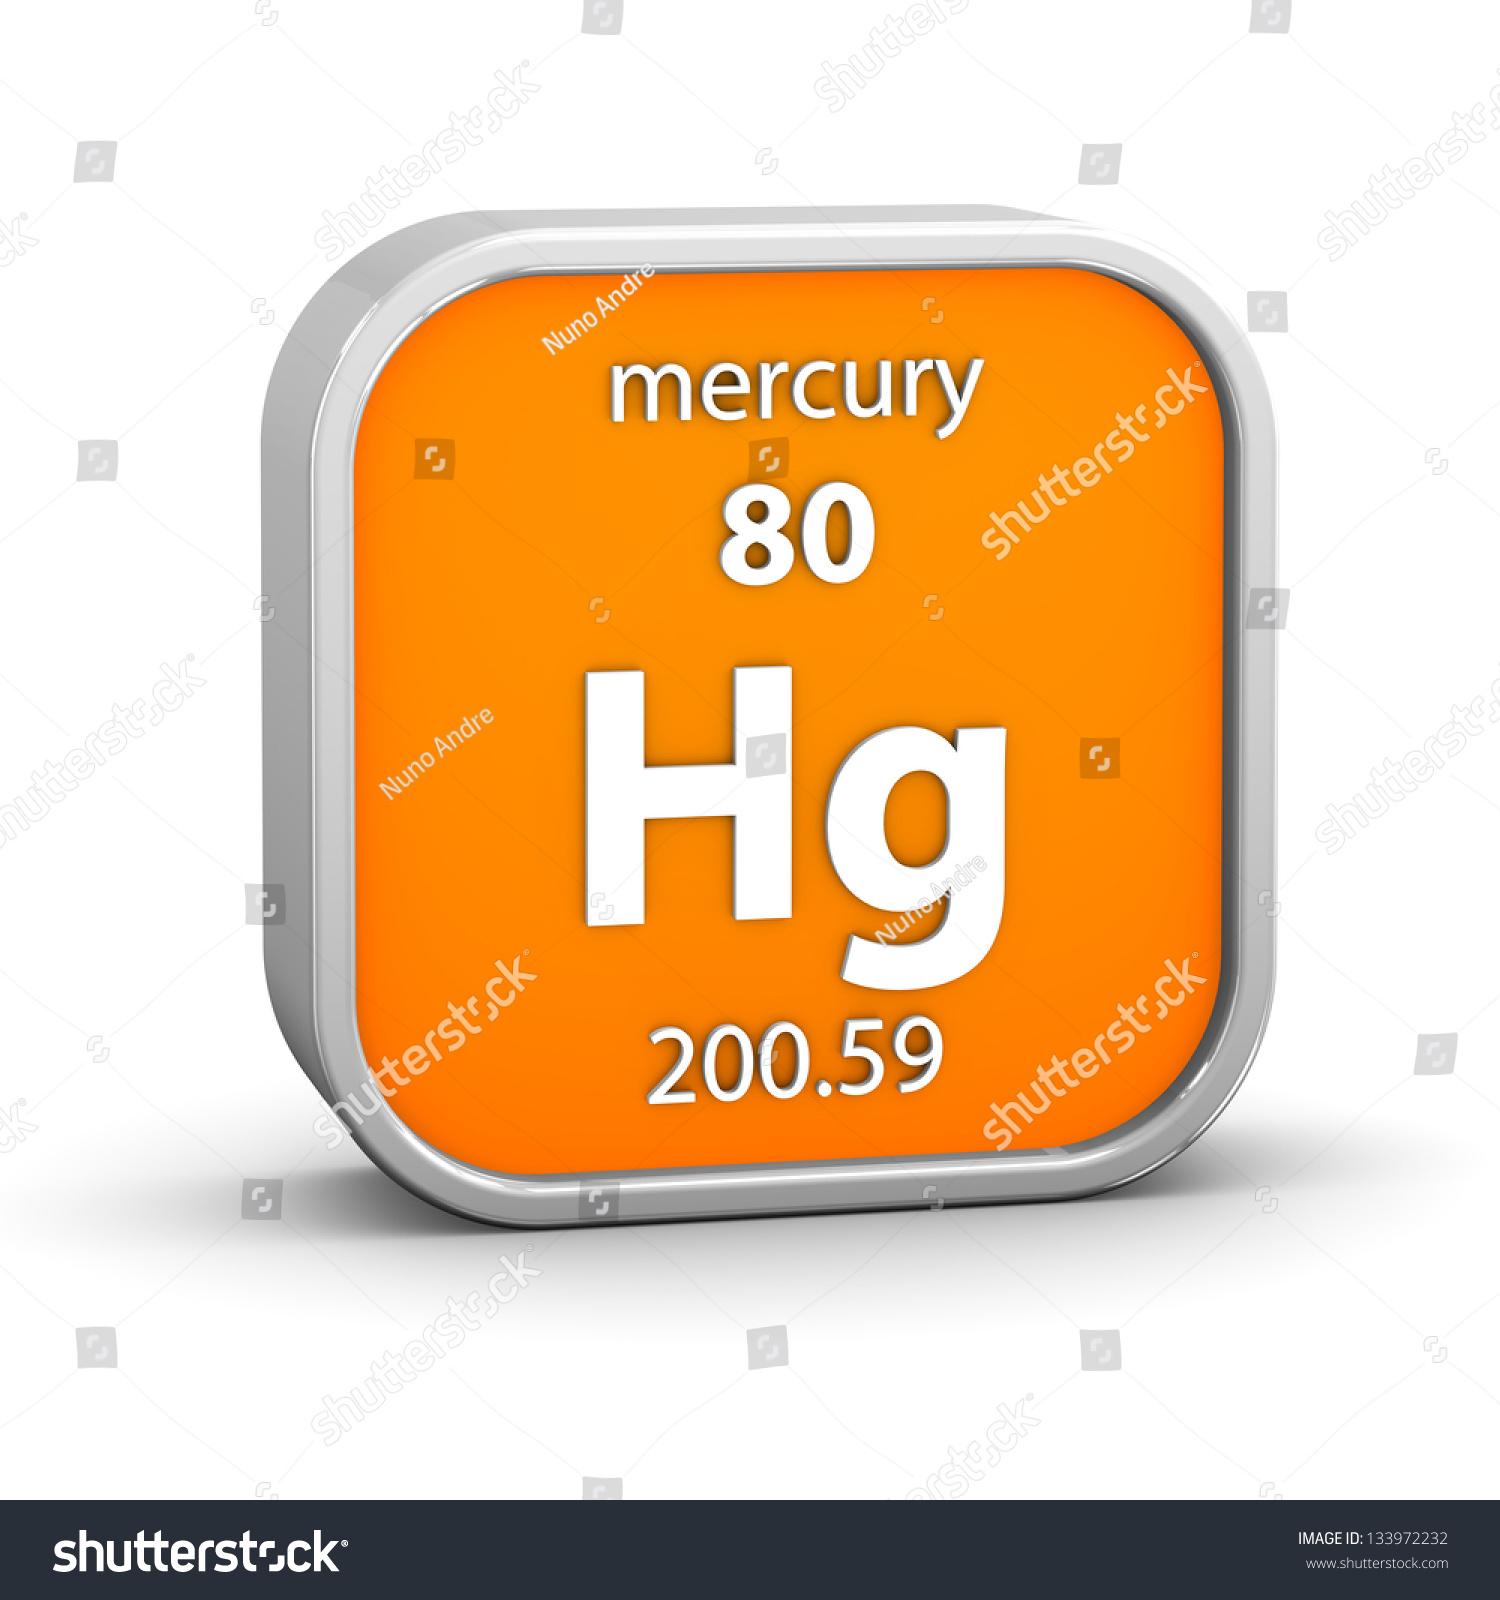 Periodic table symbol for mercury image collections periodic mercury periodic table symbol choice image periodic table images symbol for mercury periodic table gallery periodic gamestrikefo Images